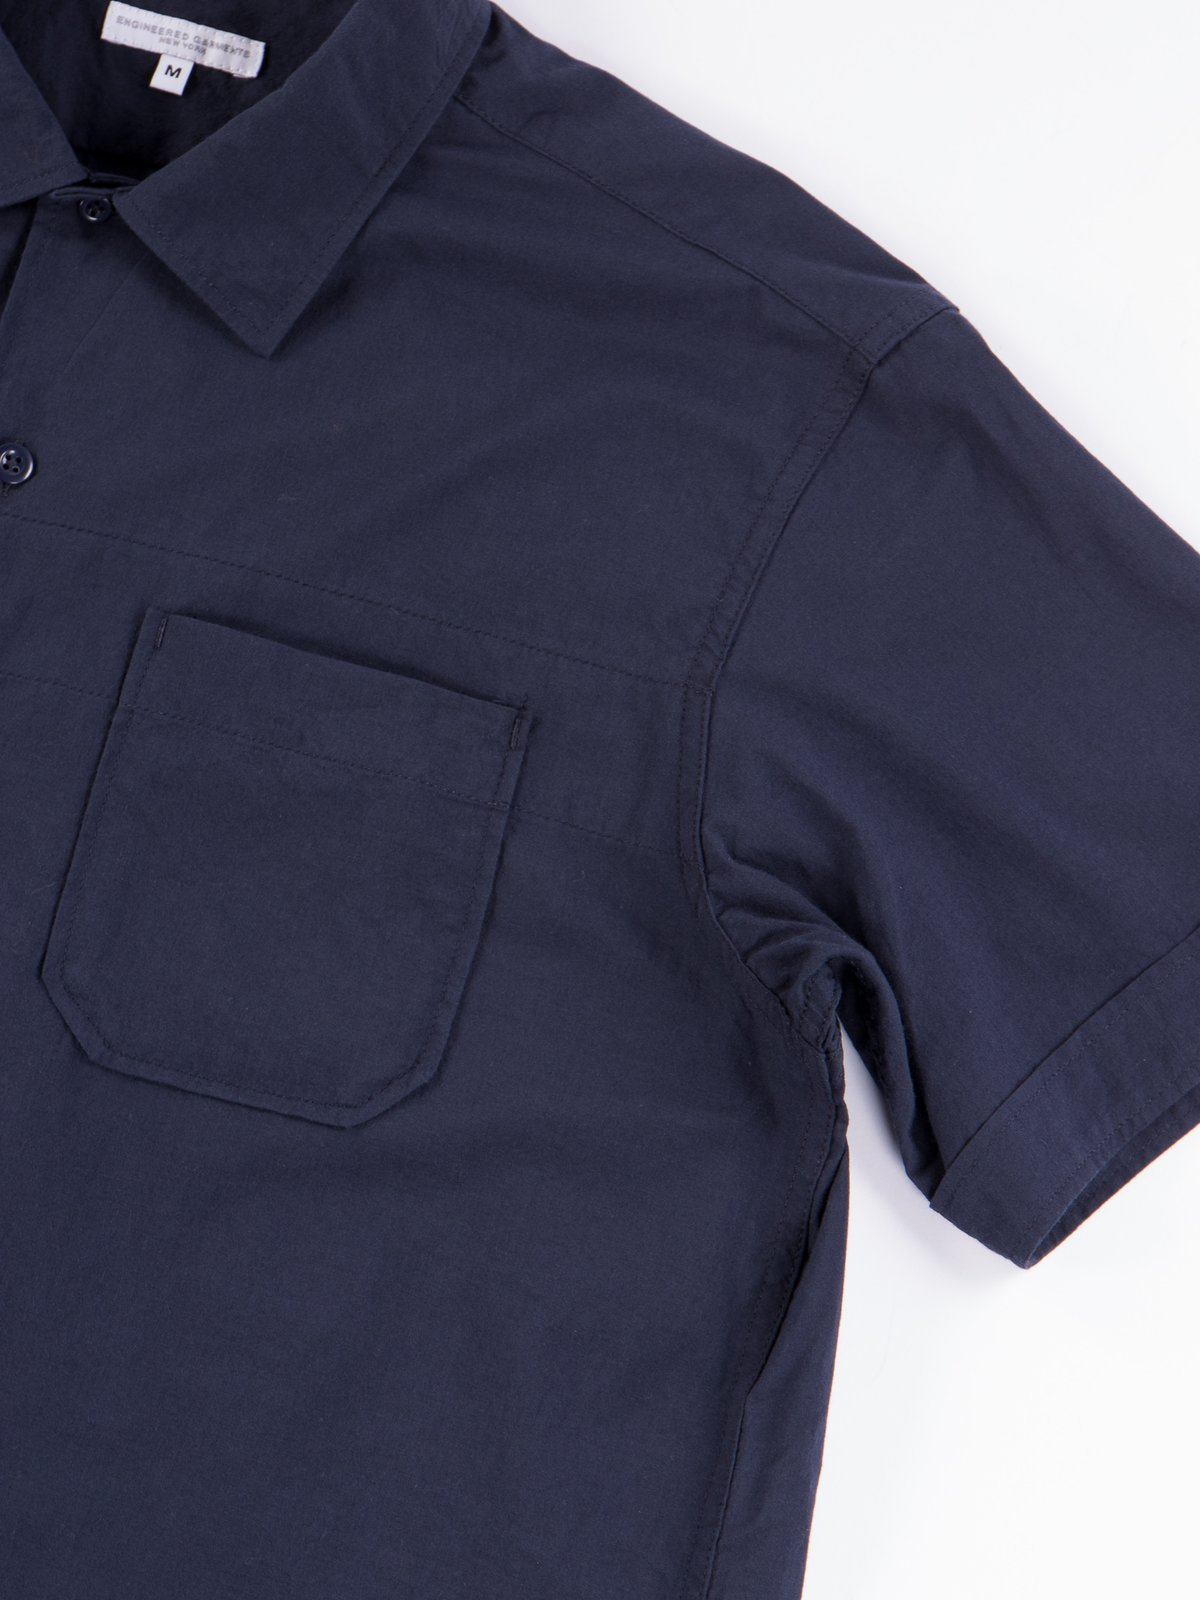 Navy Solid Cotton Lawn Camp Shirt  - Image 4